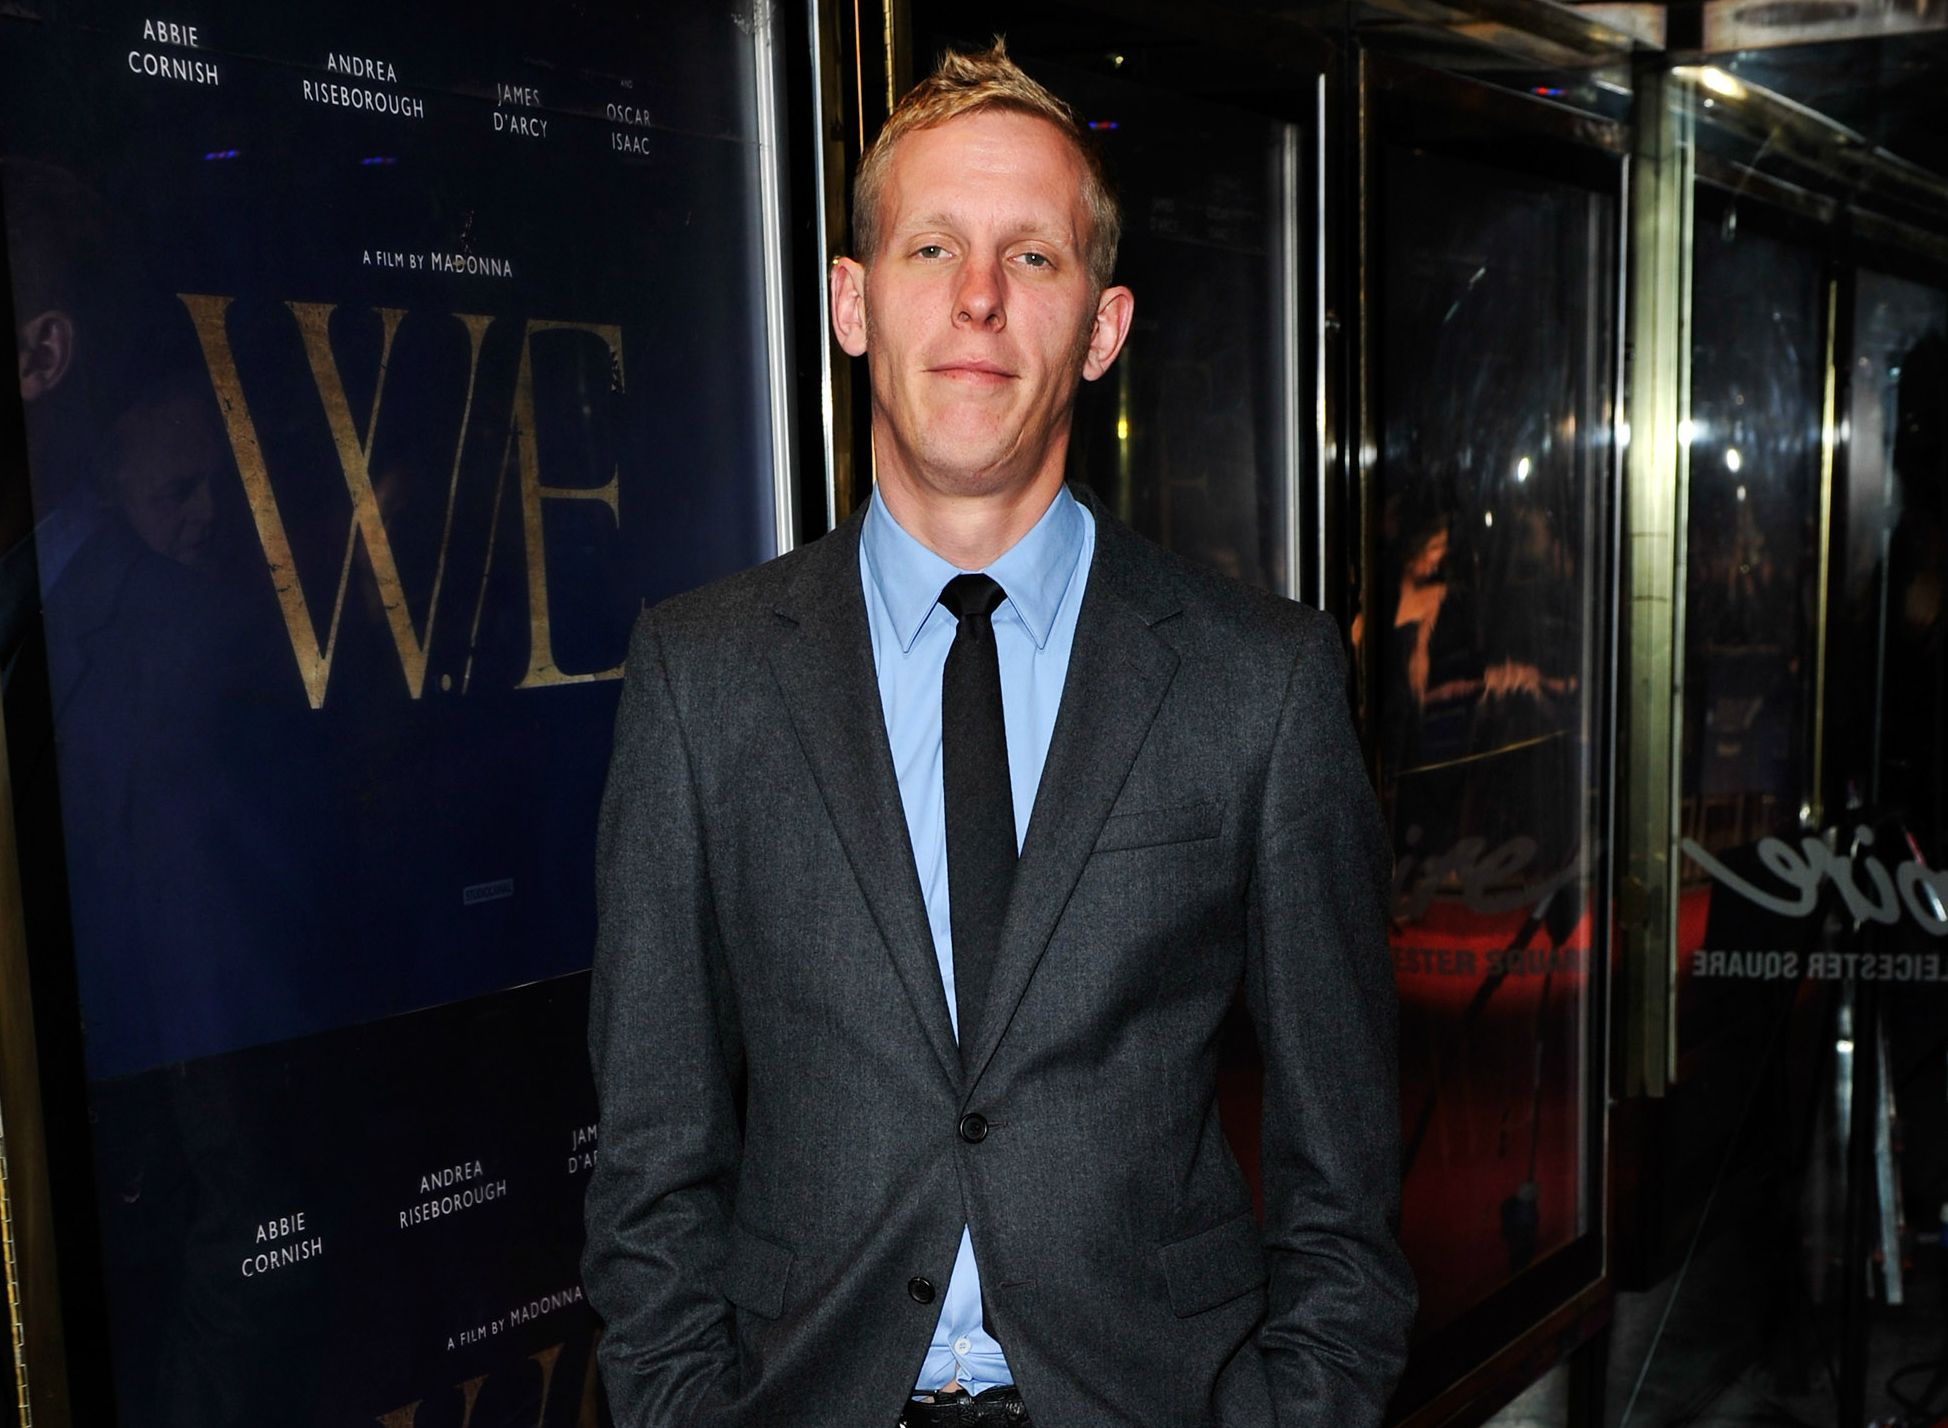 laurence fox - photo #37